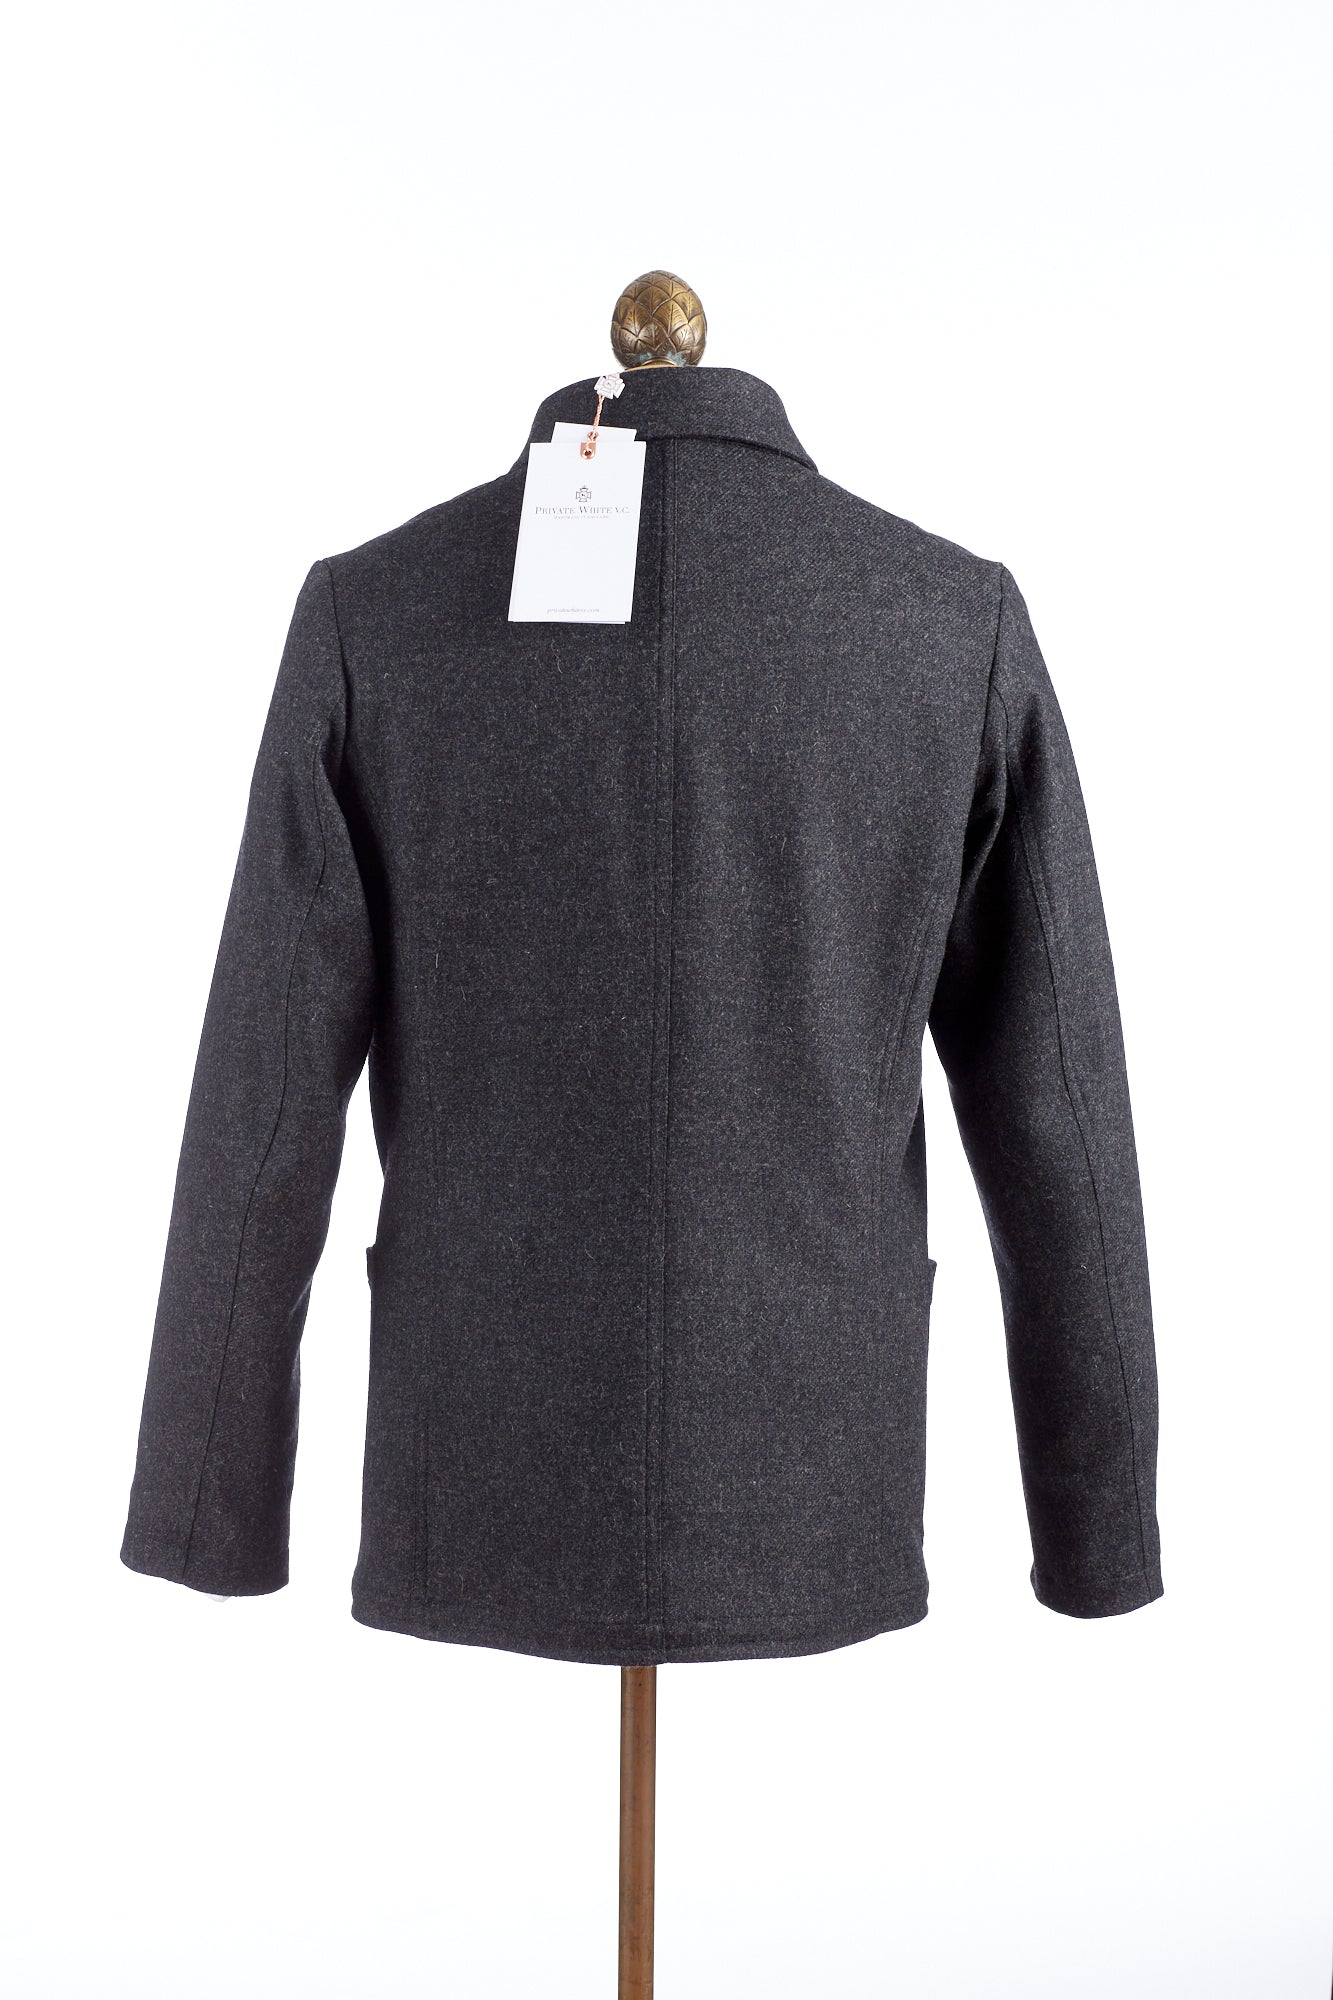 Private White V.C. Grey Wool Button-up Shacket Back